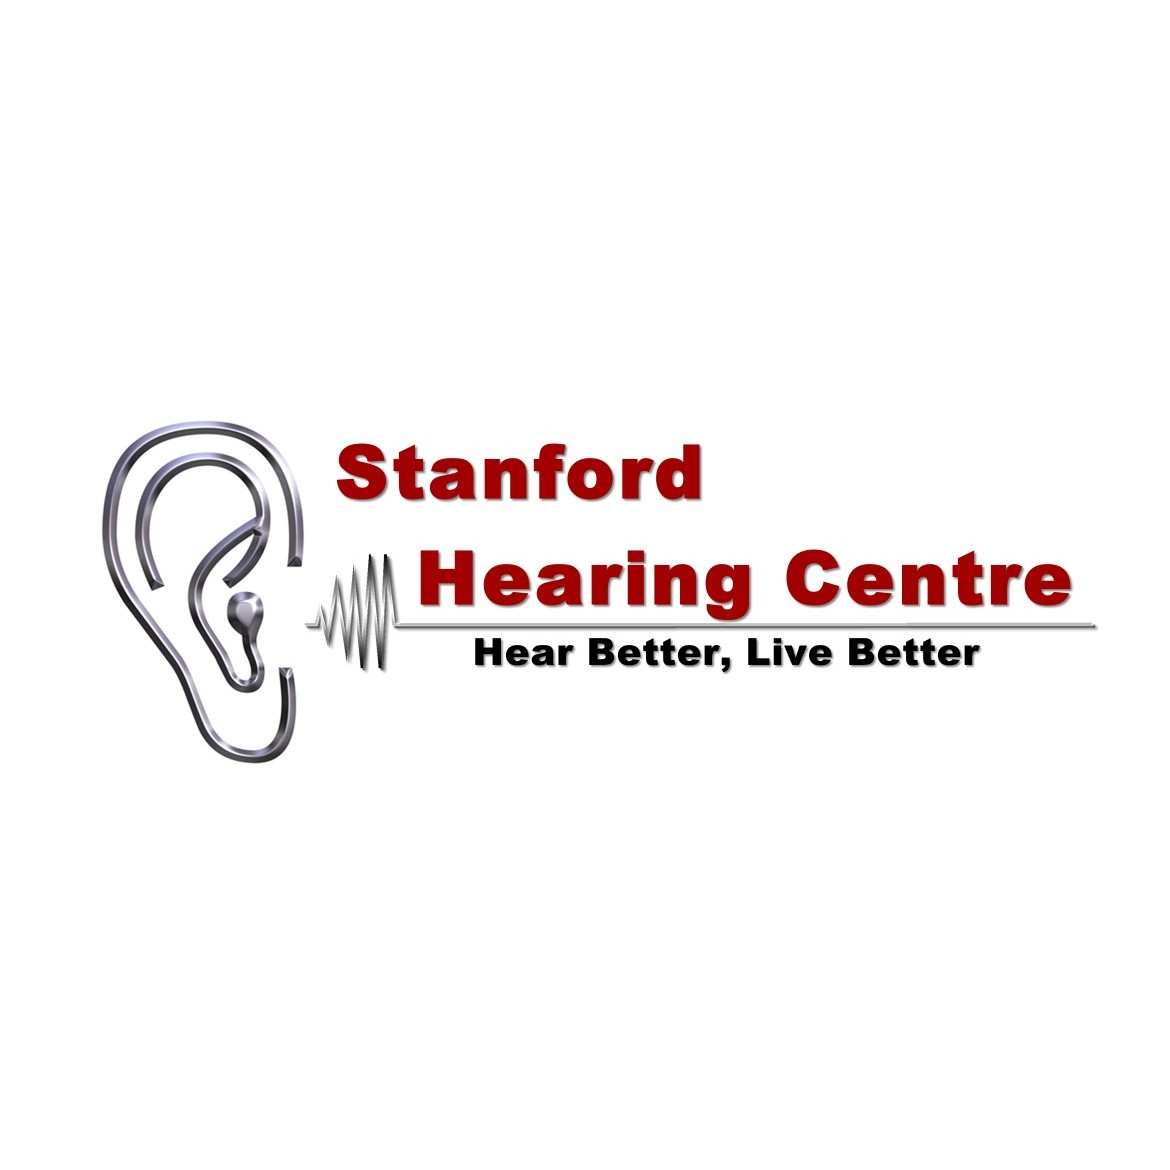 Stanford Hearing Centre logo